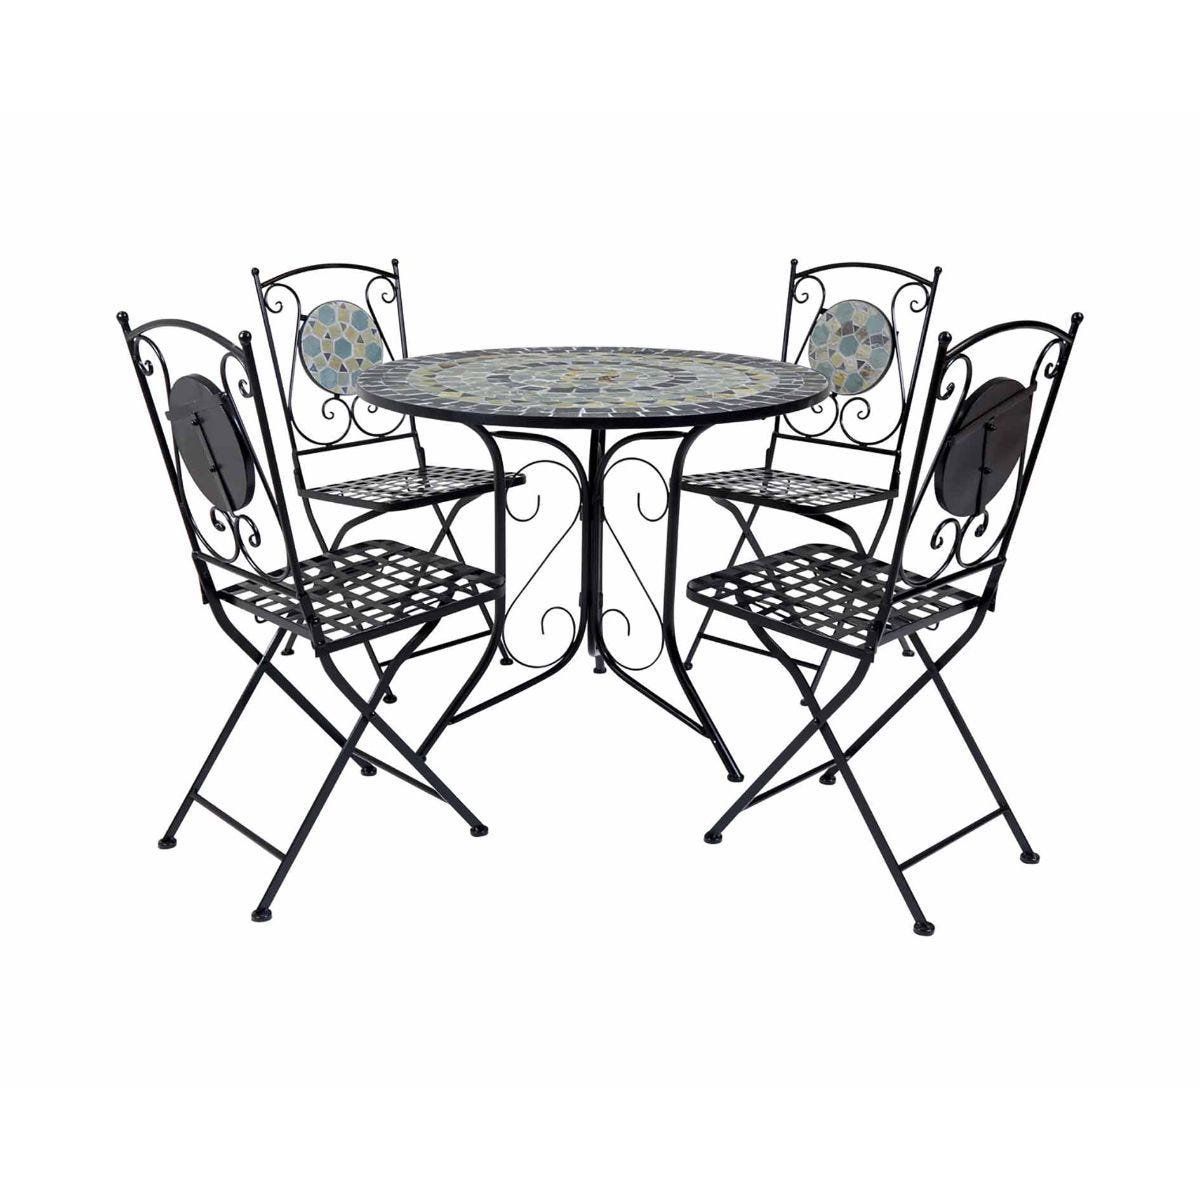 Charles Bentley Blue Mosaic 5 Piece Garden Table and Chairs Set, Blue